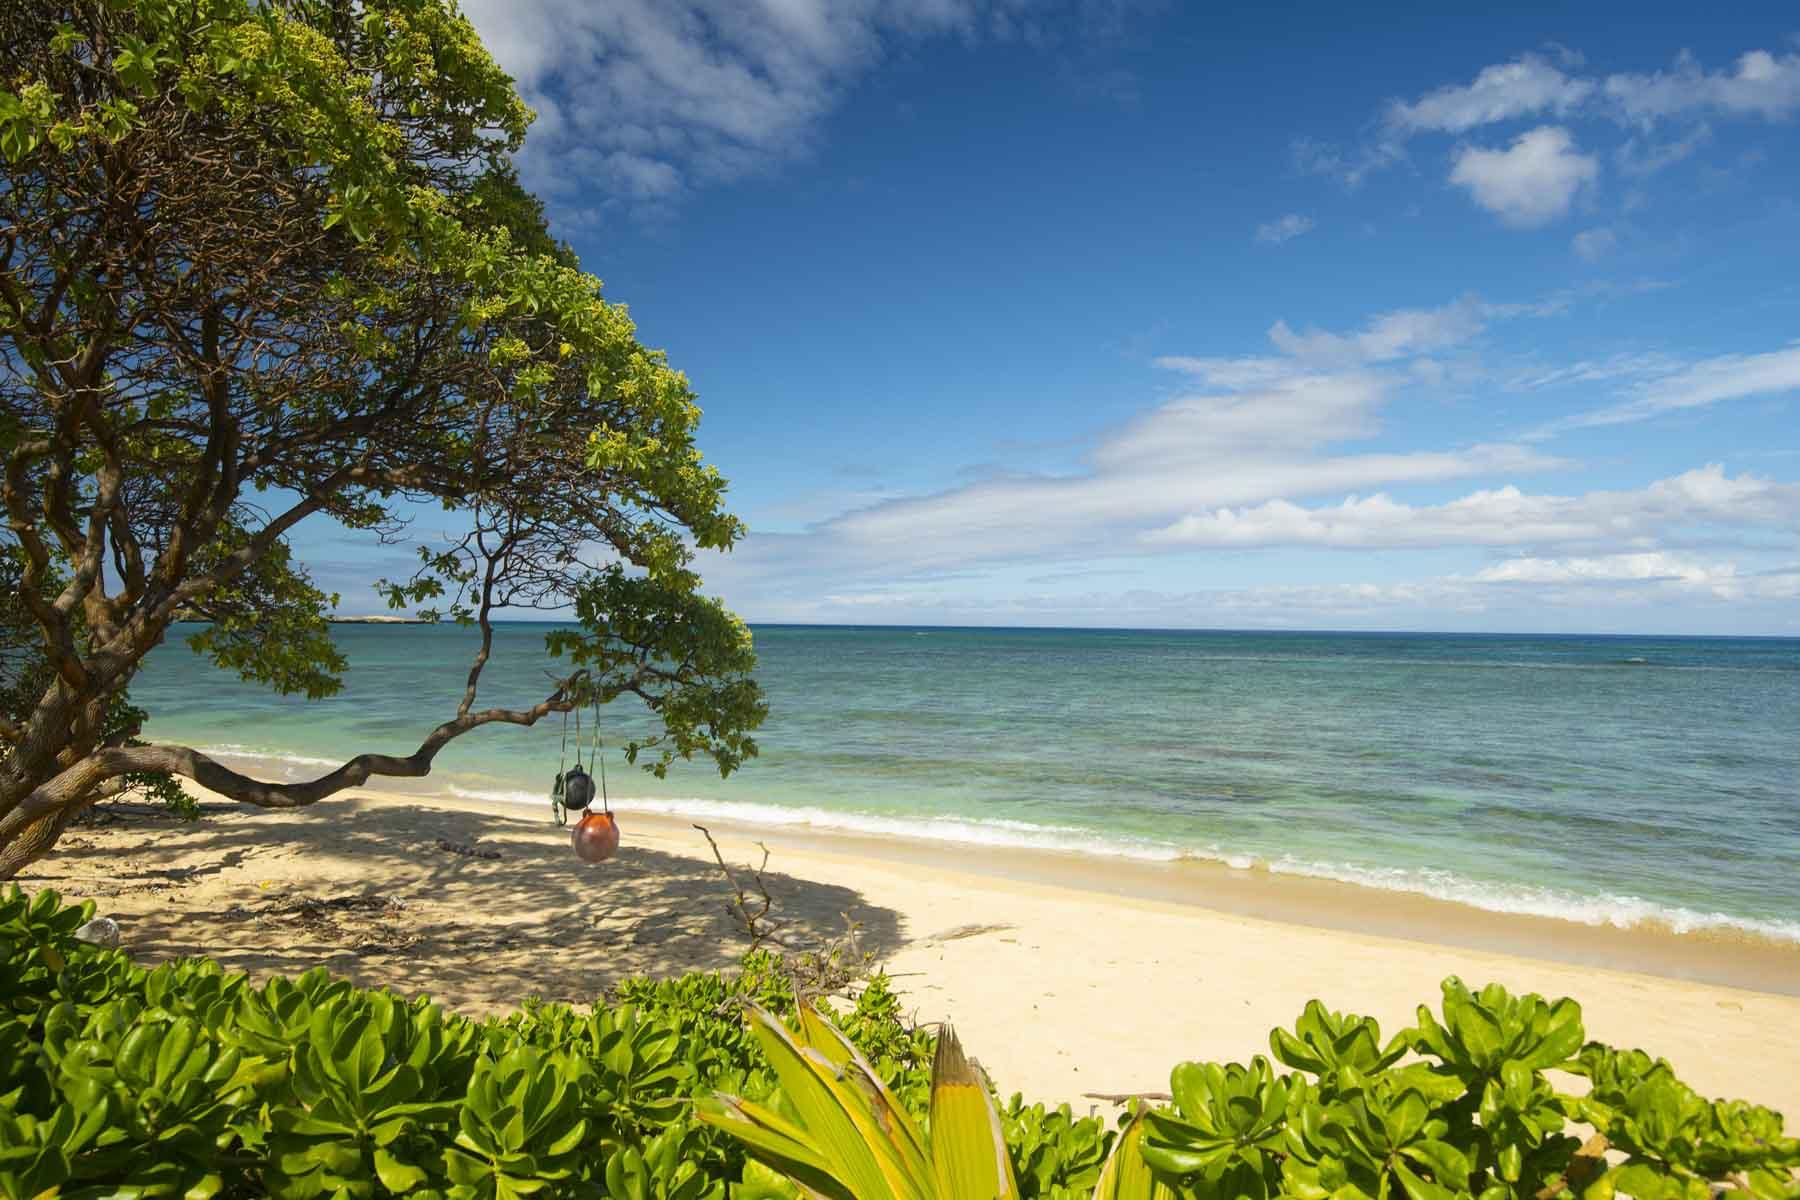 Walk onto the sany beachfront from the lawn.